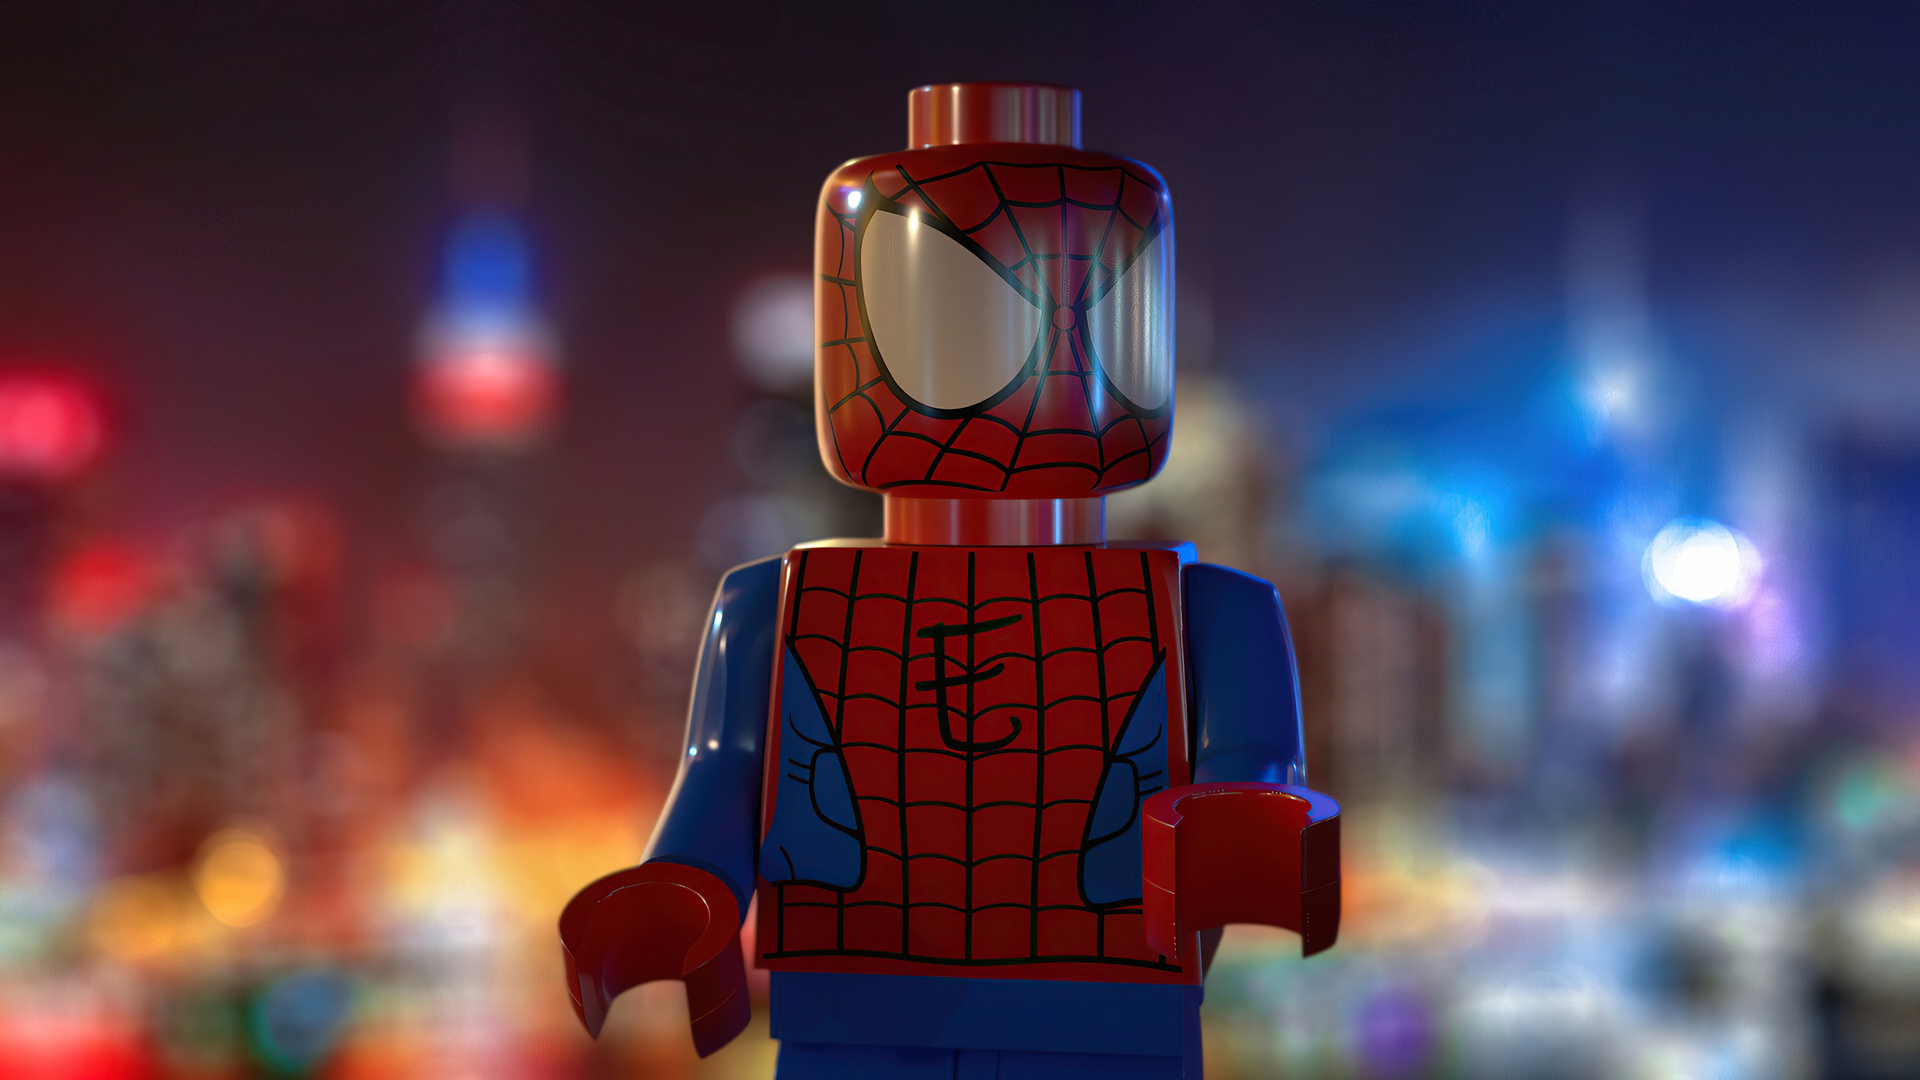 1920x1080 Spider Man Lego 4k Laptop Full Hd 1080p Hd 4k Wallpapers Images Backgrounds Photos And Pictures